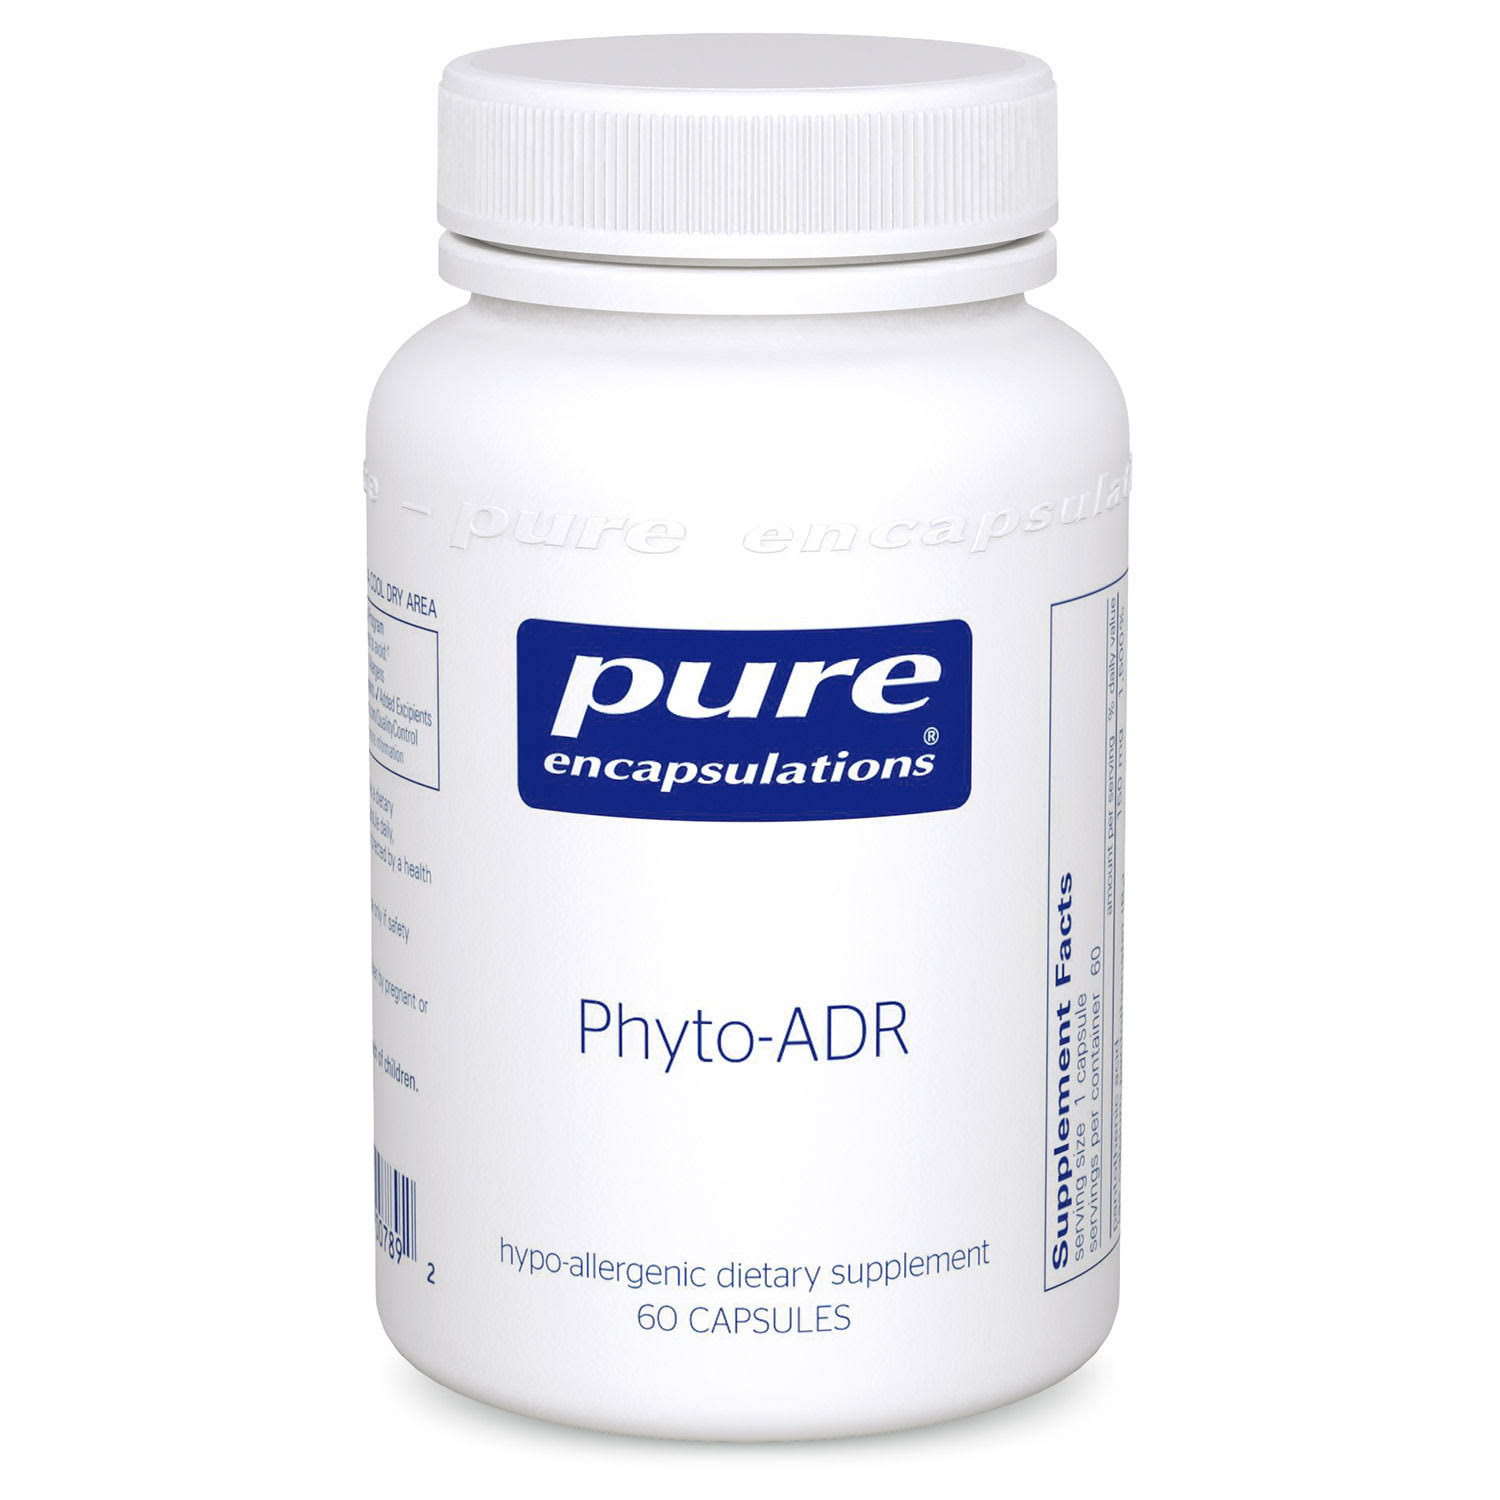 Pure Encapsulations Phyto-ADR Hypoallergenic Adrenal Supplement - 60 Capsules